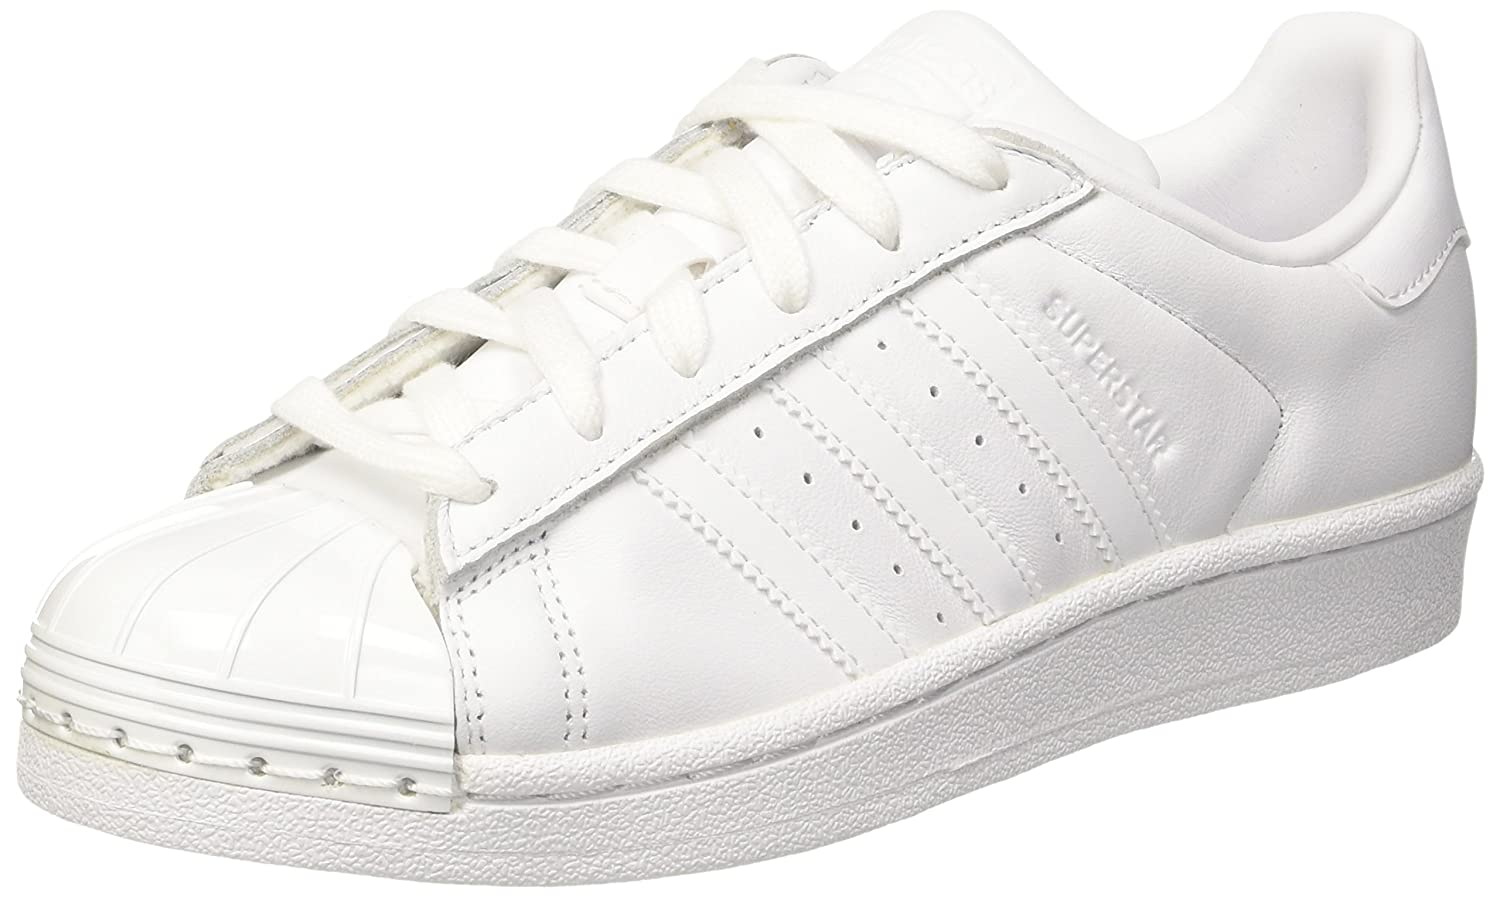 Adidas Superstar Metal Toe, Zapatillas para Mujer 39 1/3 EU|Blanco (Footwear White / Footwear White / Core Black)